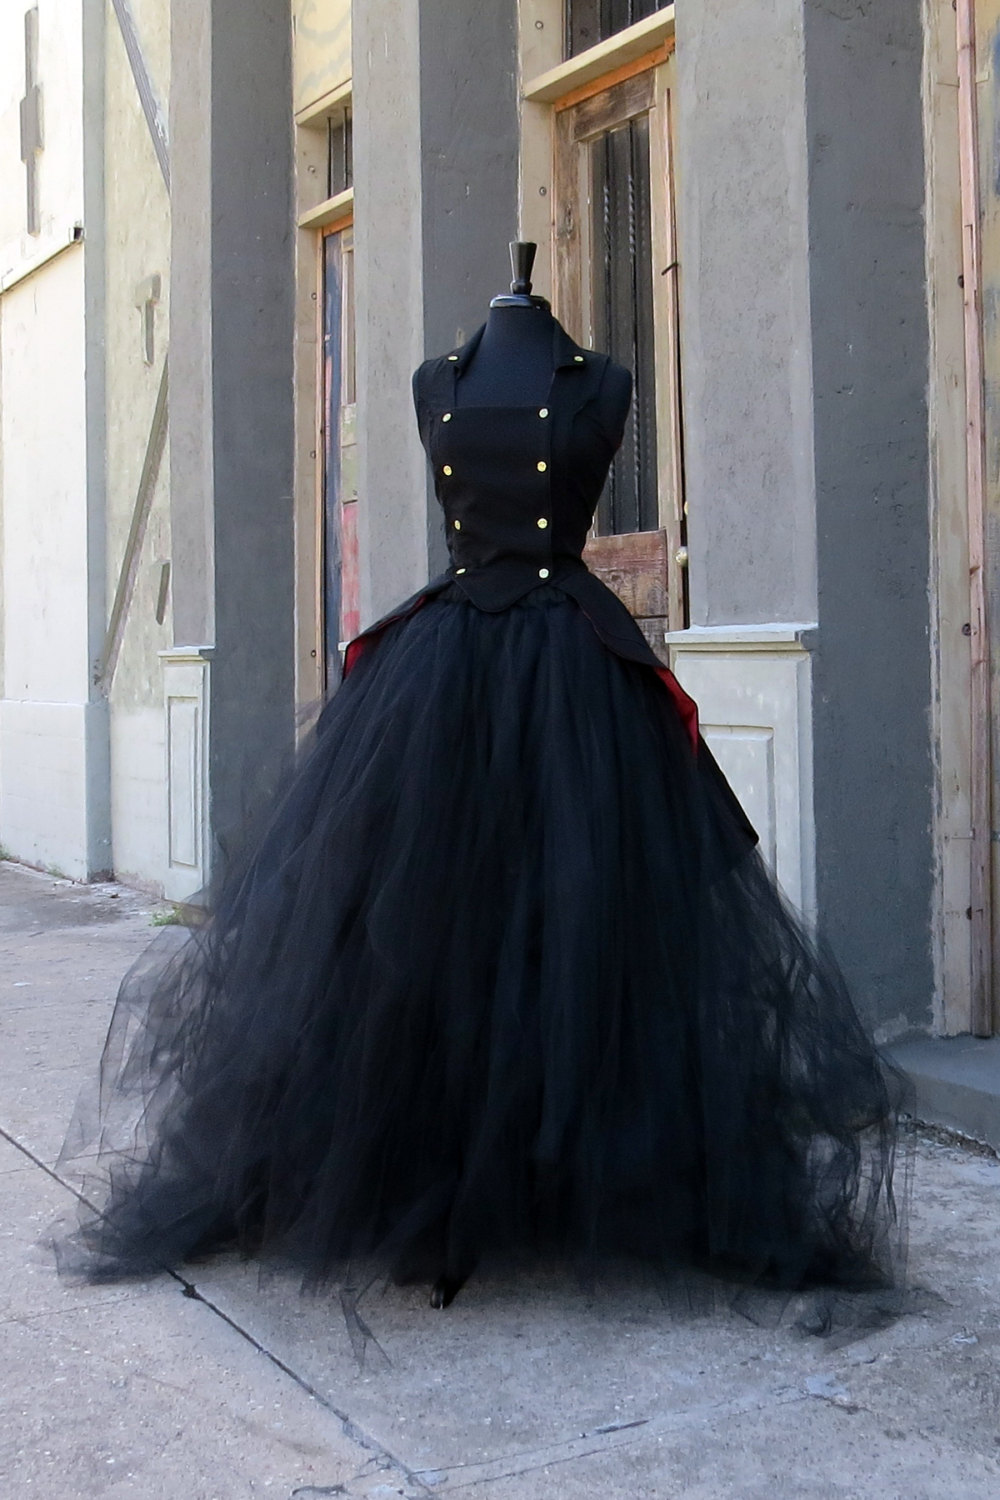 Shop these To Die For Handmade Halloween Costumes